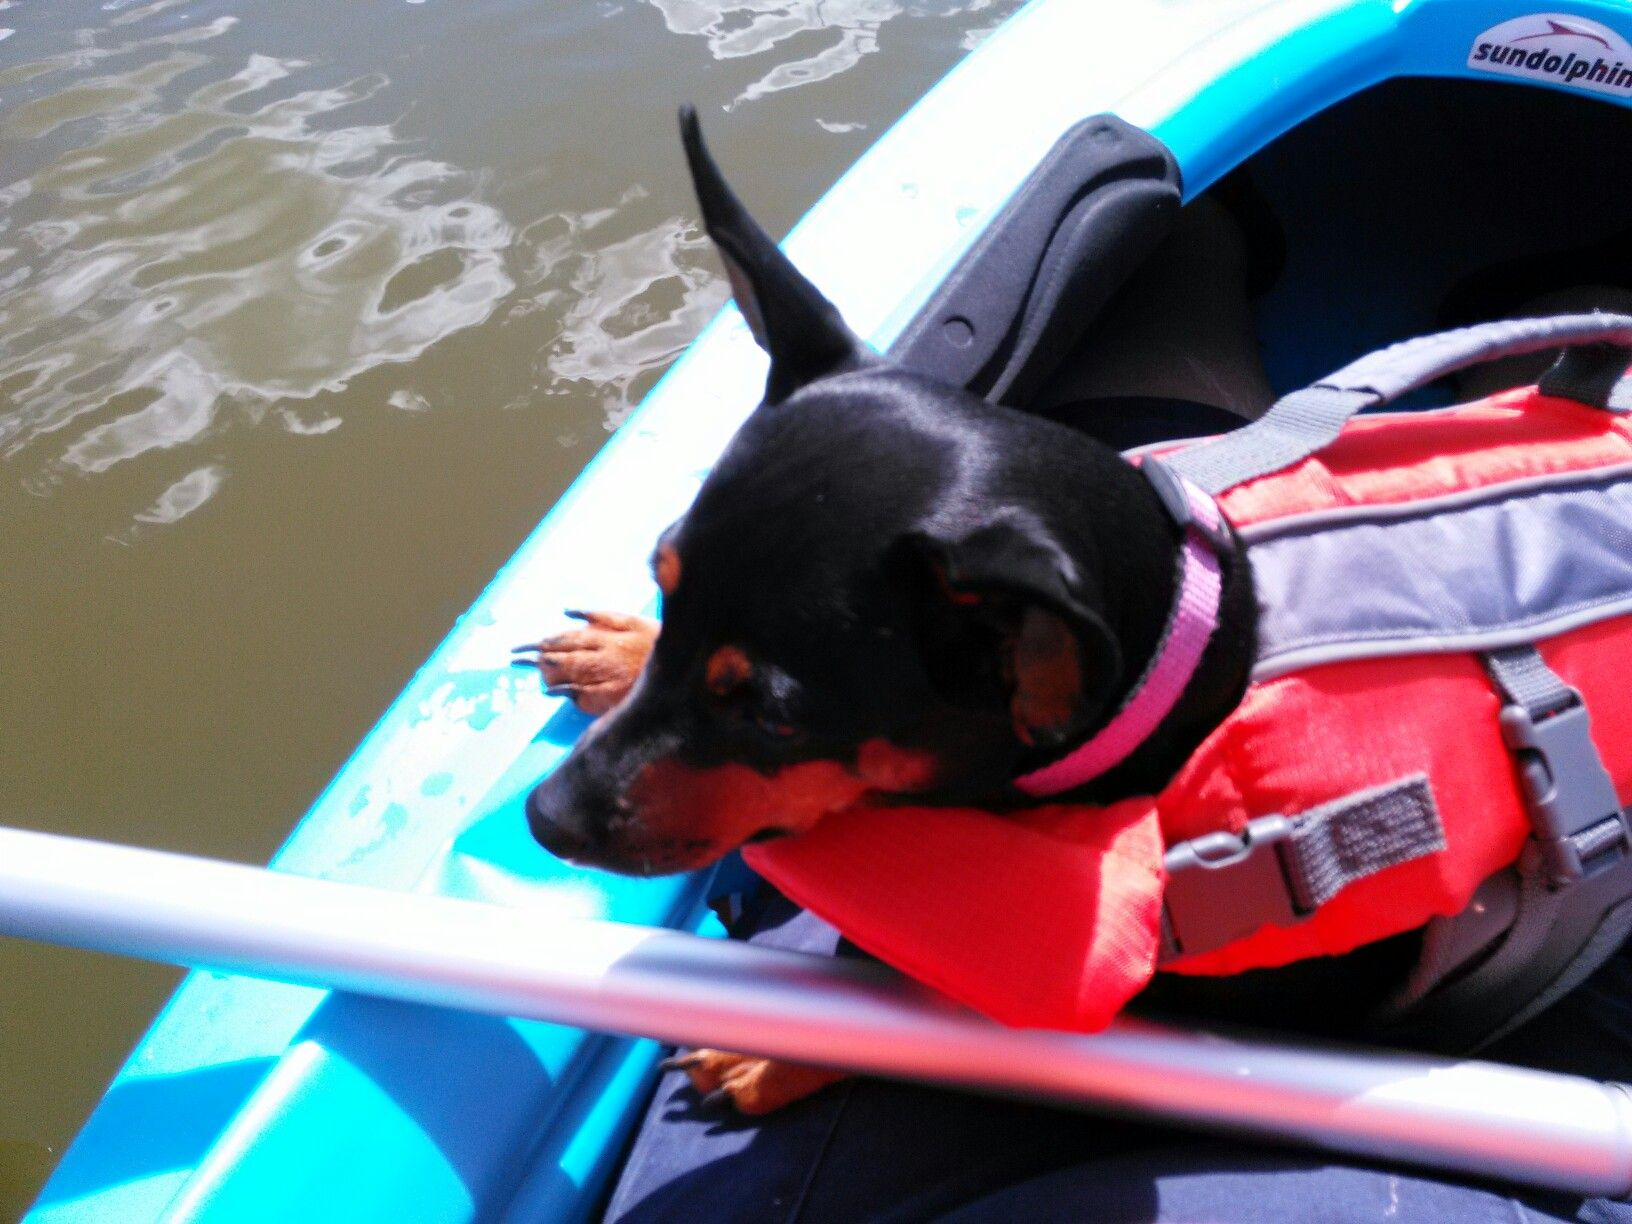 Pin By Kayak Girl On Mini Pins And Weiner Dogs Weiner Dog Dogs Boston Terrier